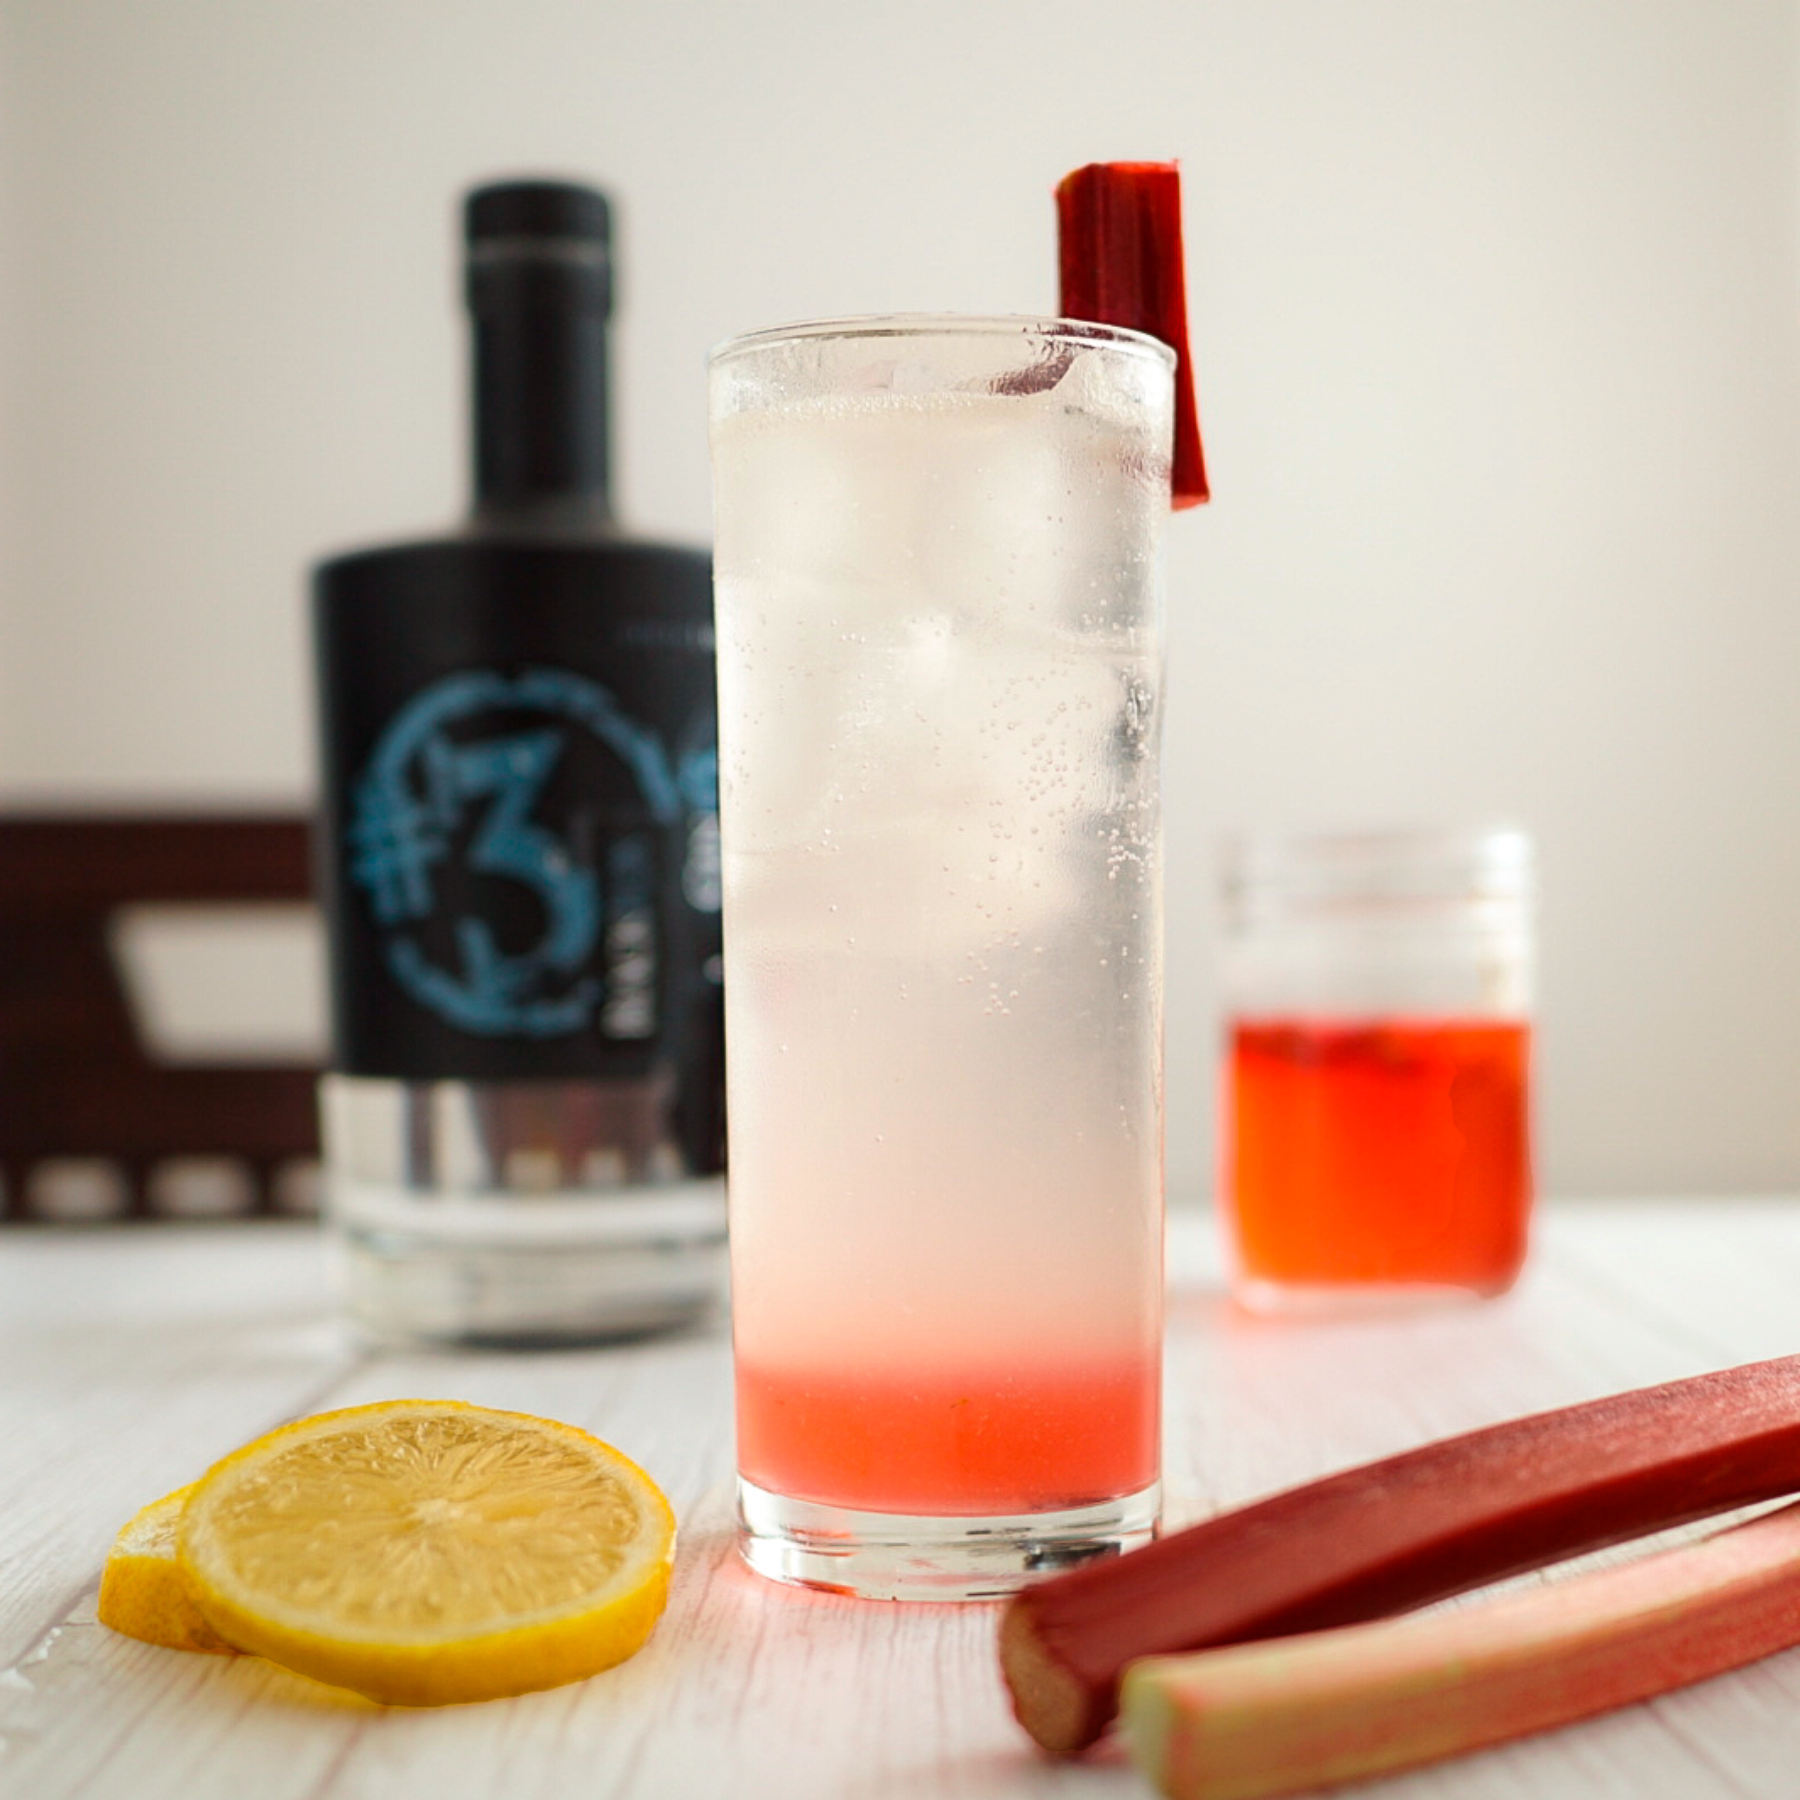 Canadian #3 Gin 750ml bottle and Rhubarb Lemonade cocktail with lemon slices and rhubarb garnish